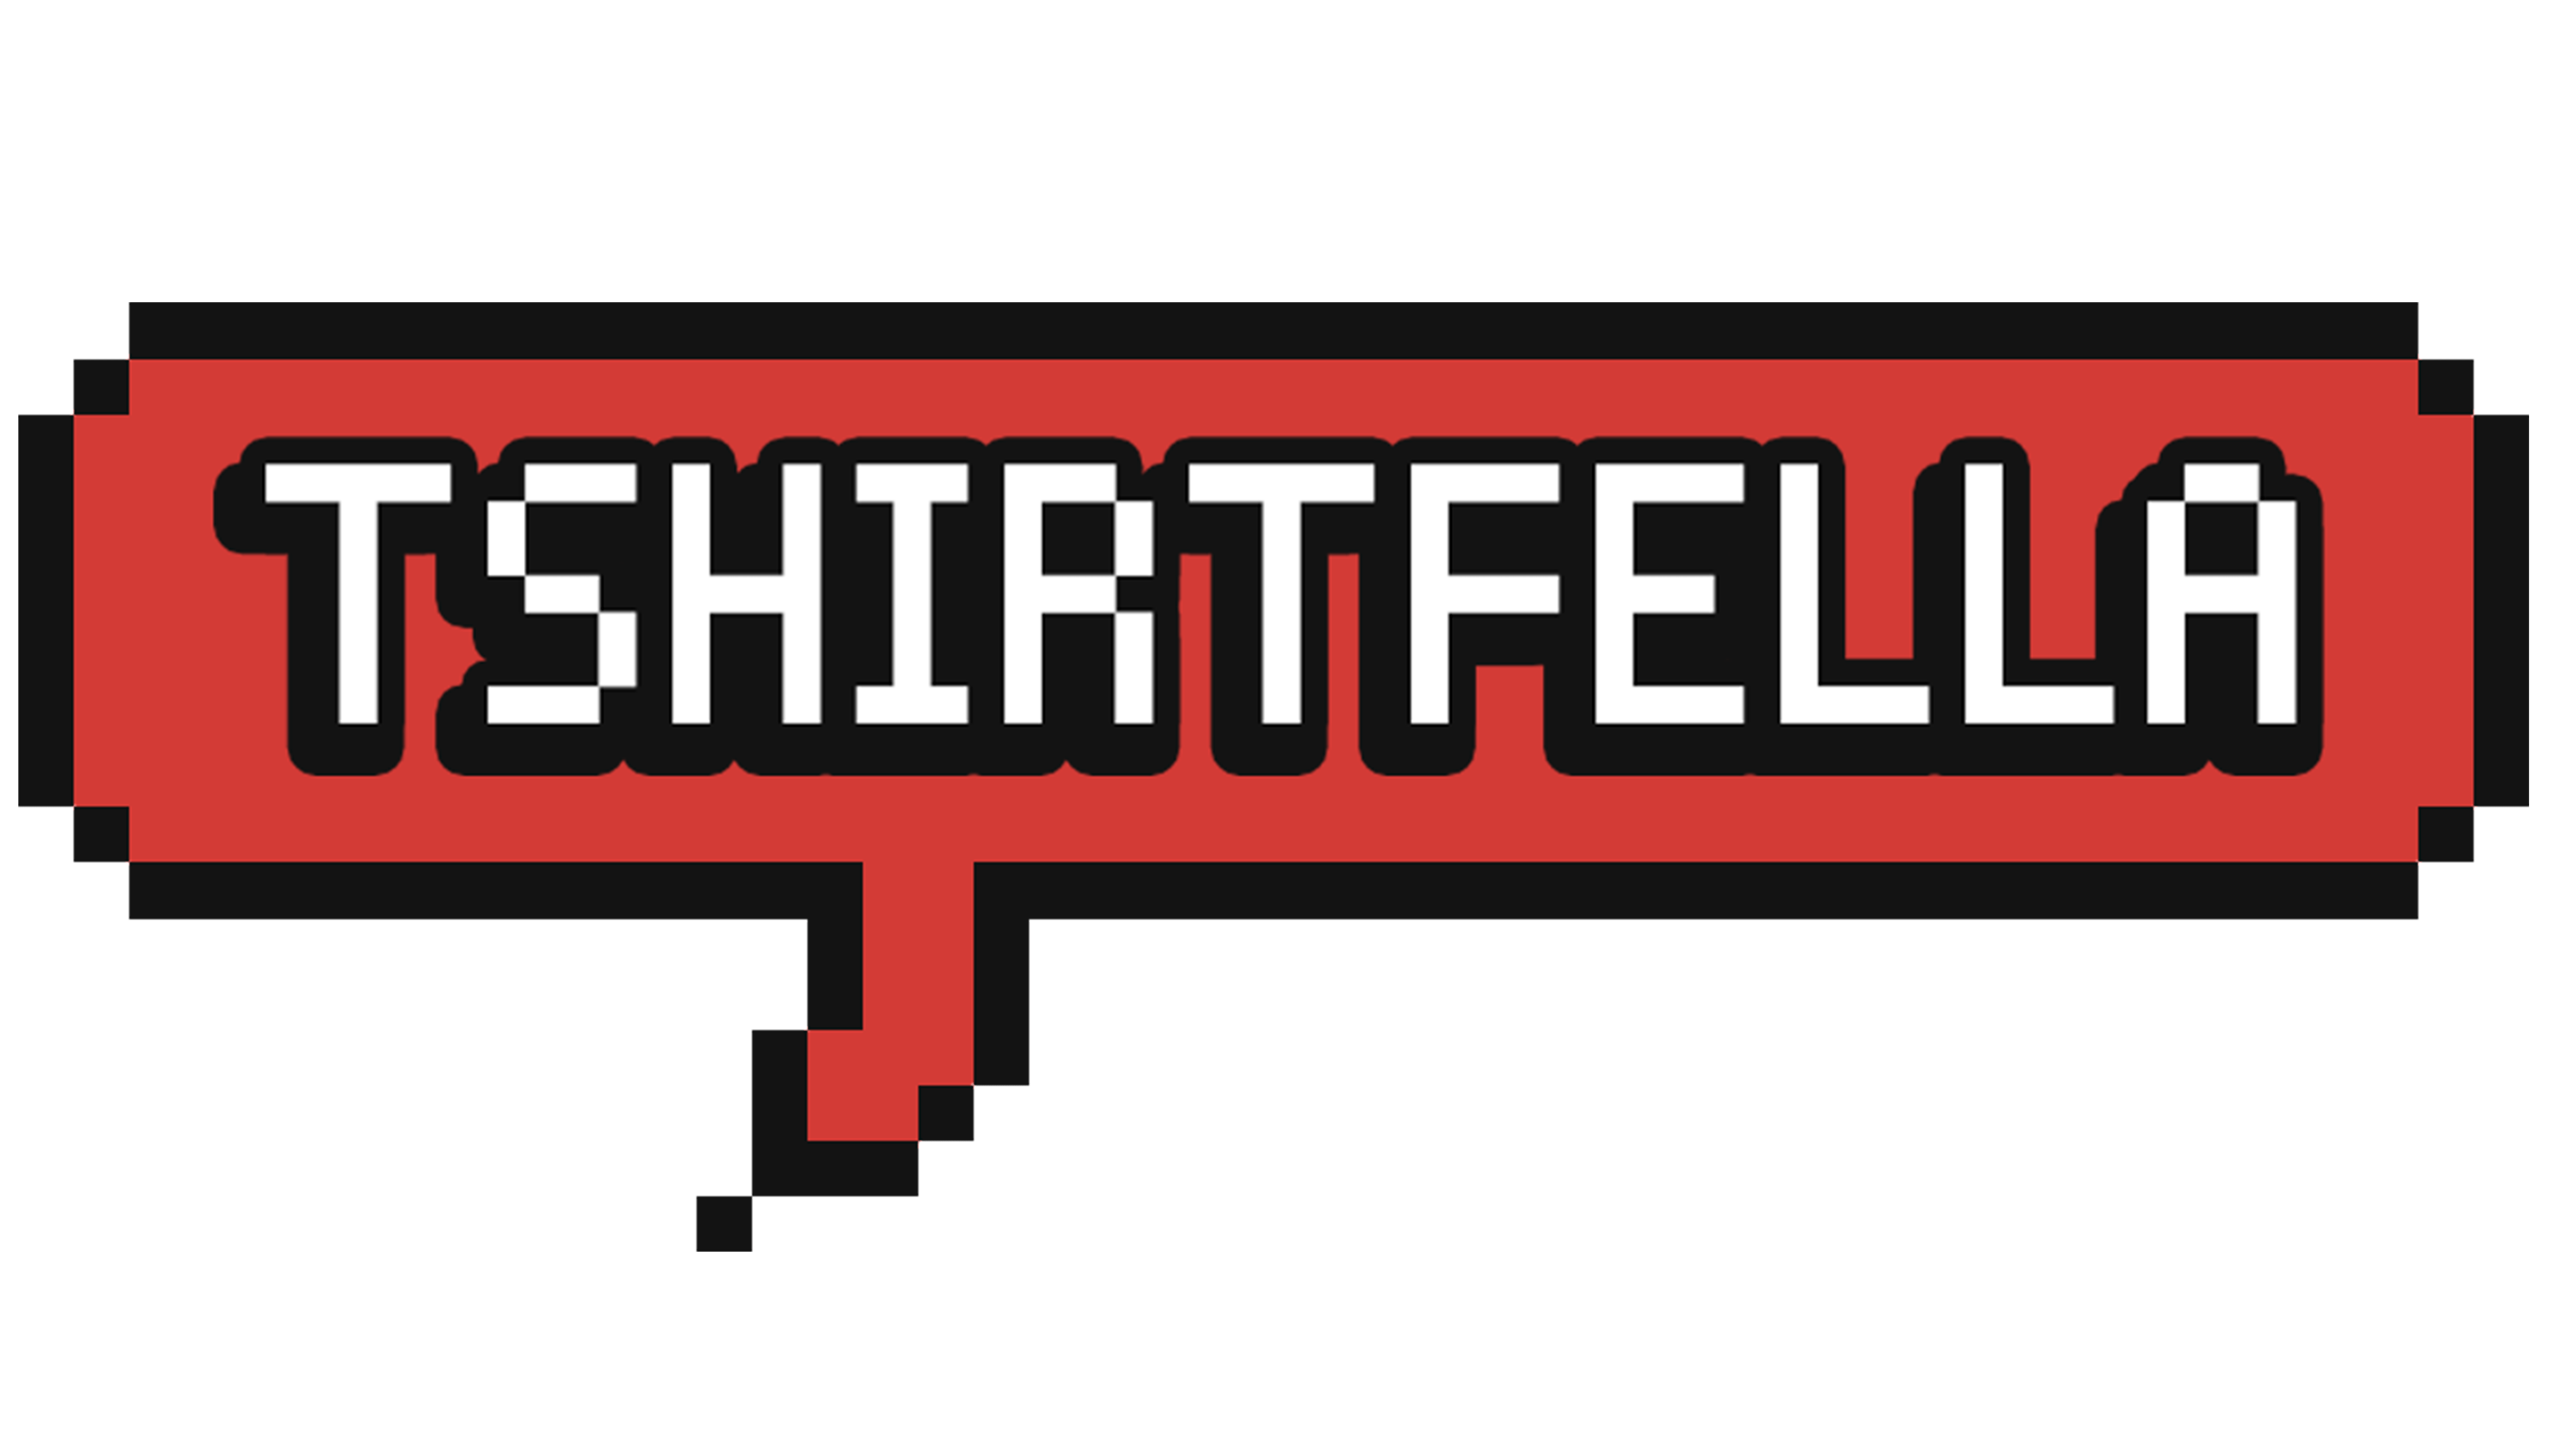 Read Tshirtfella Reviews